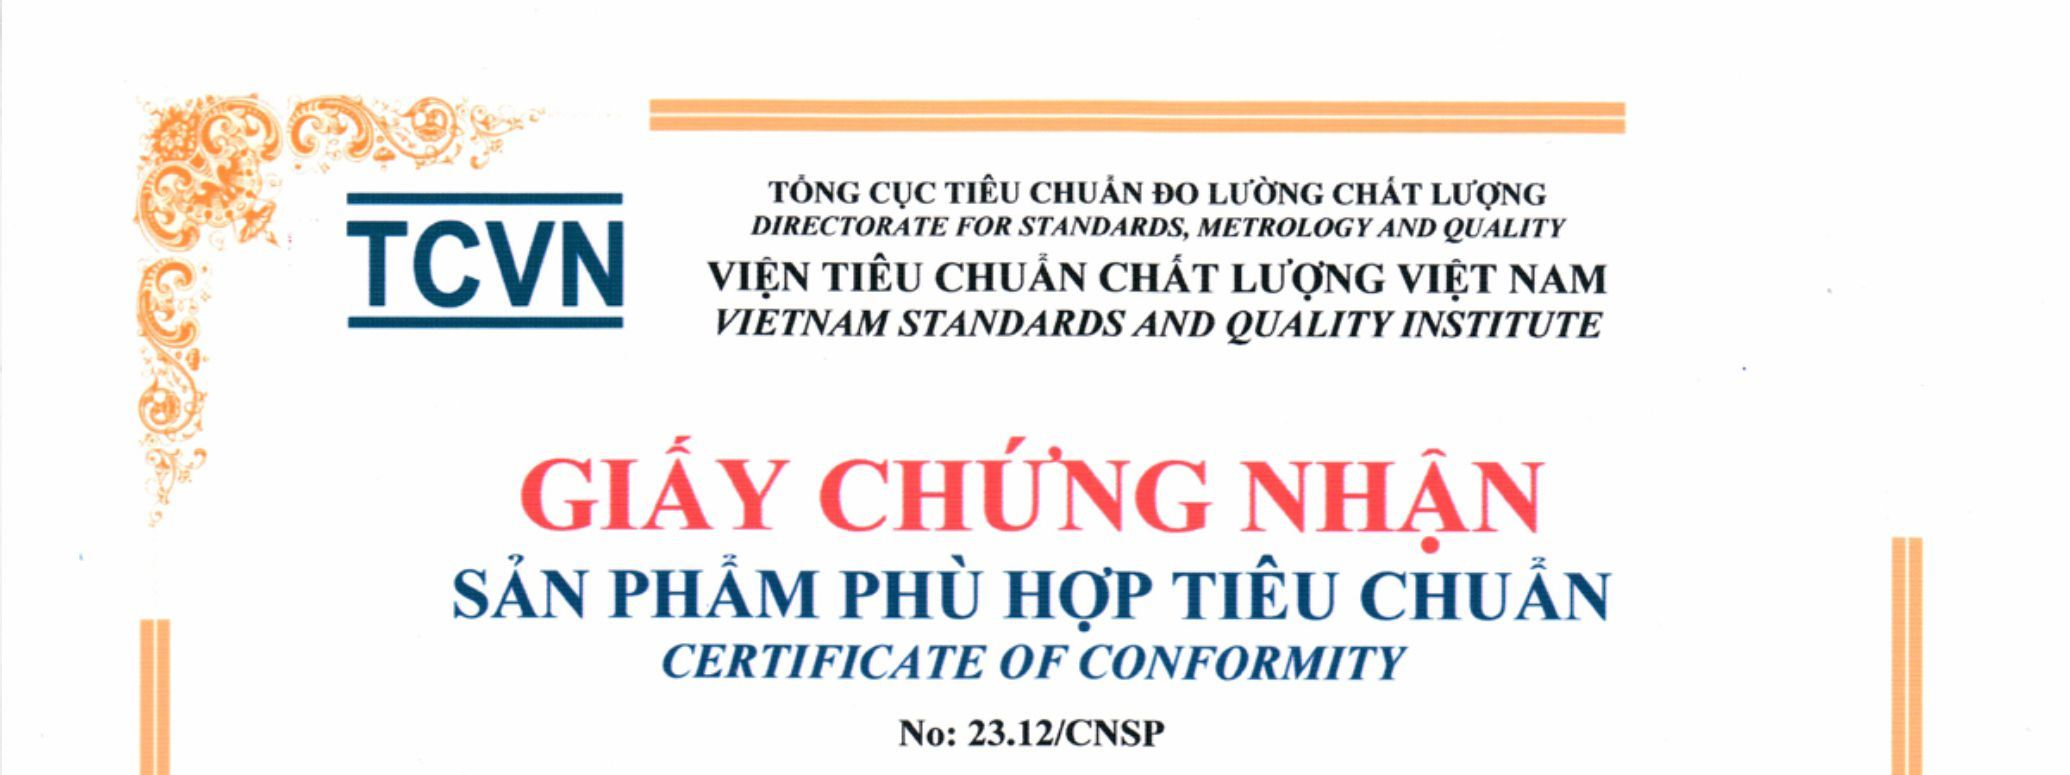 quy-dinh-ve-cong-bo-chat-luong-san-pham